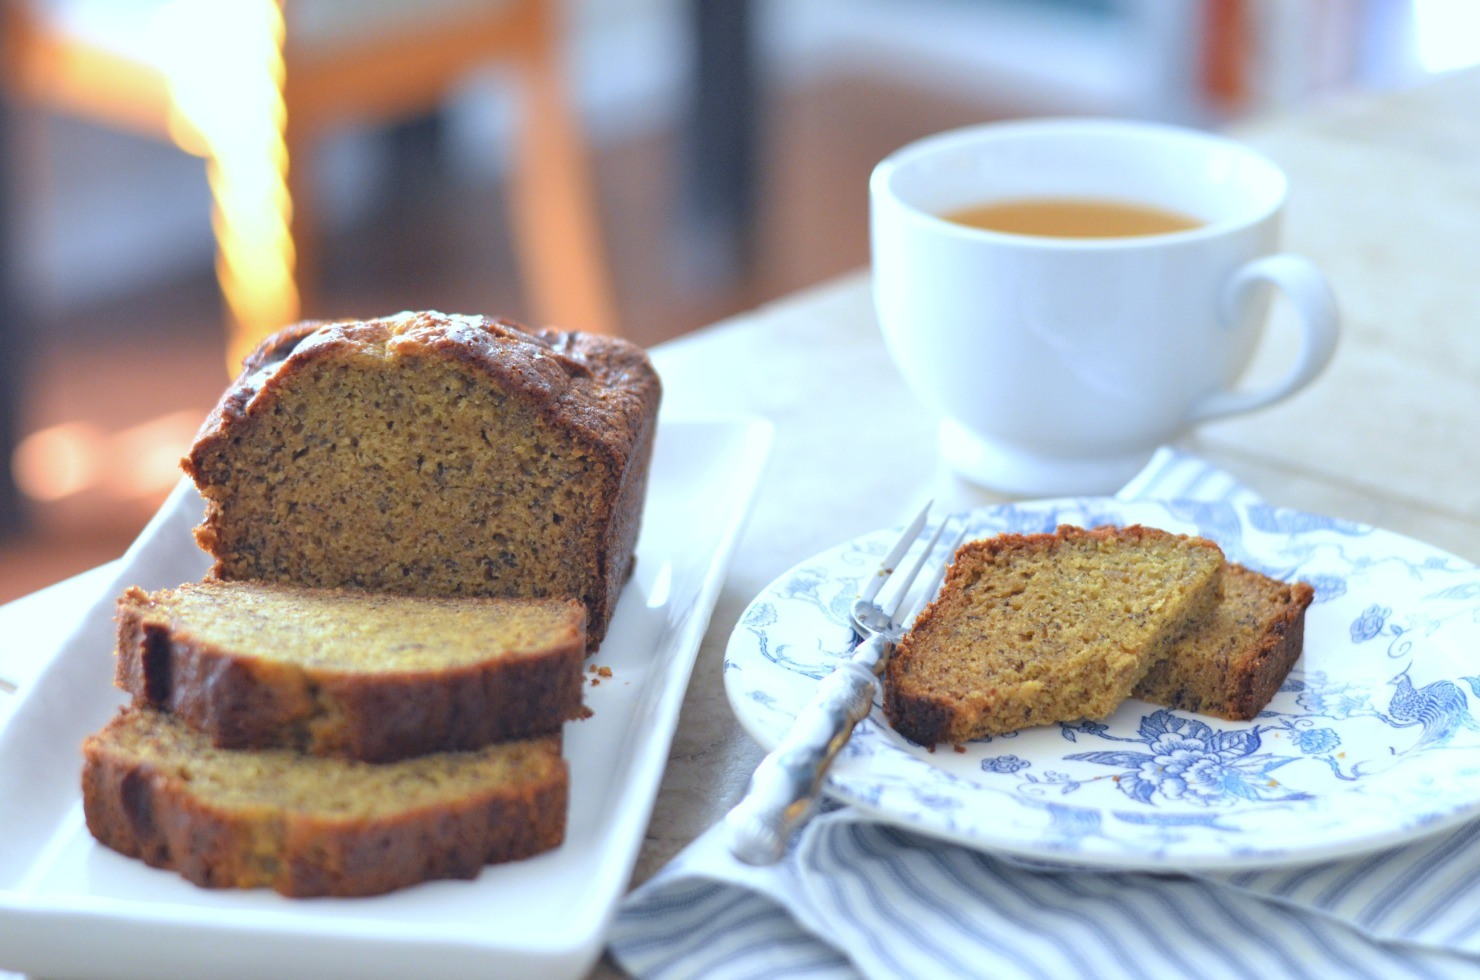 Julia's Banana Bread